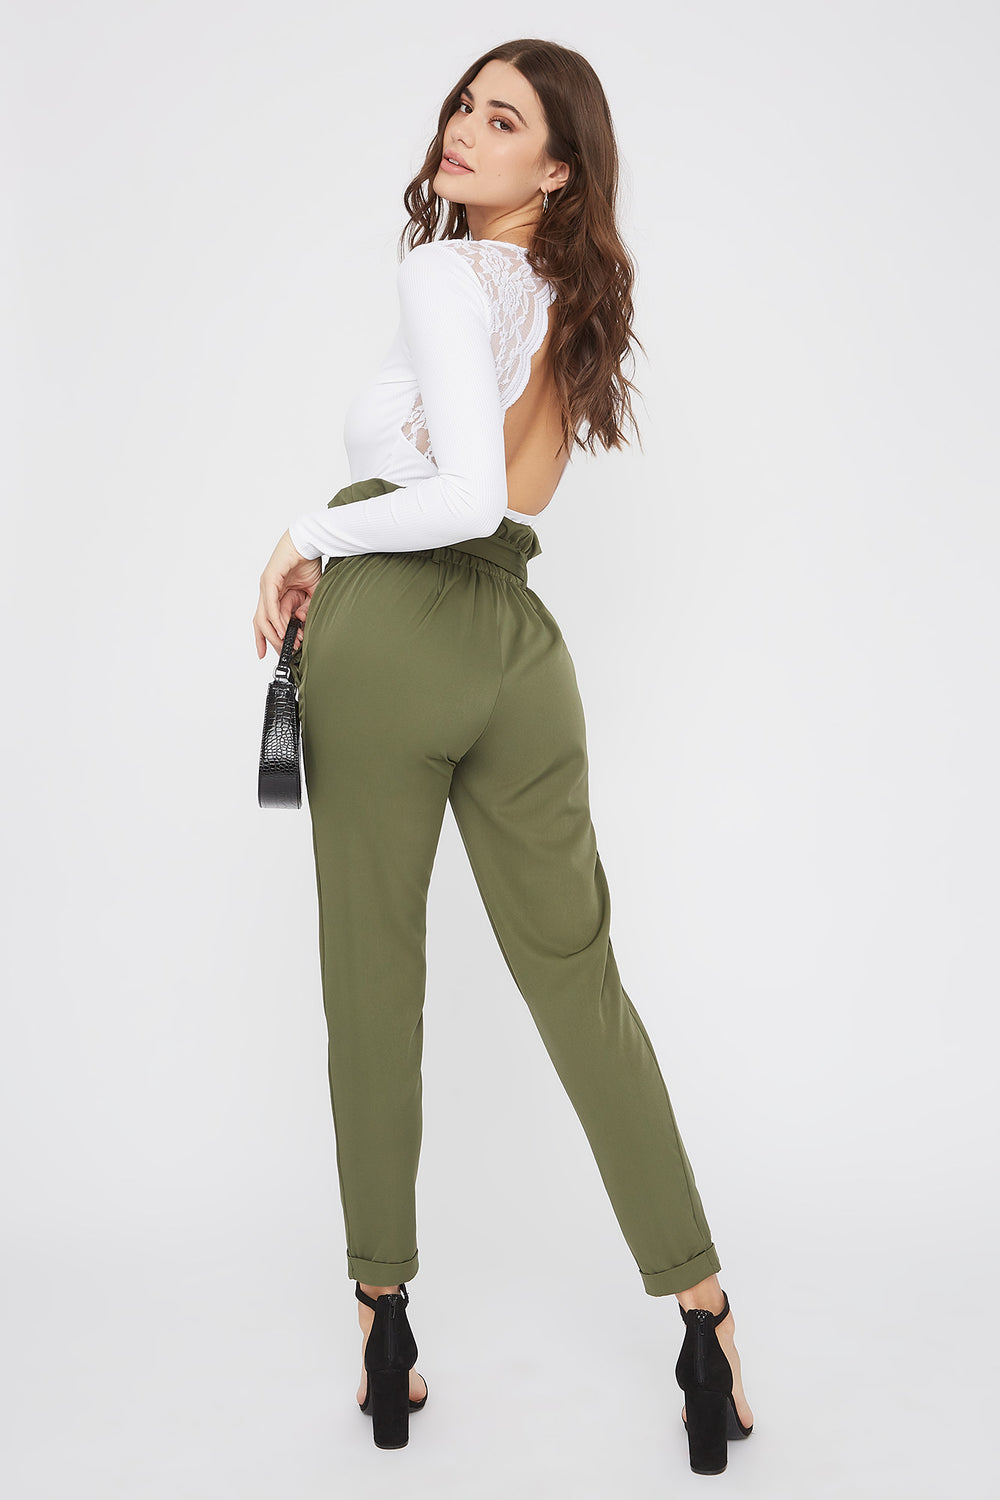 Self Belted Pull-On Paperbag Pant Dark Green